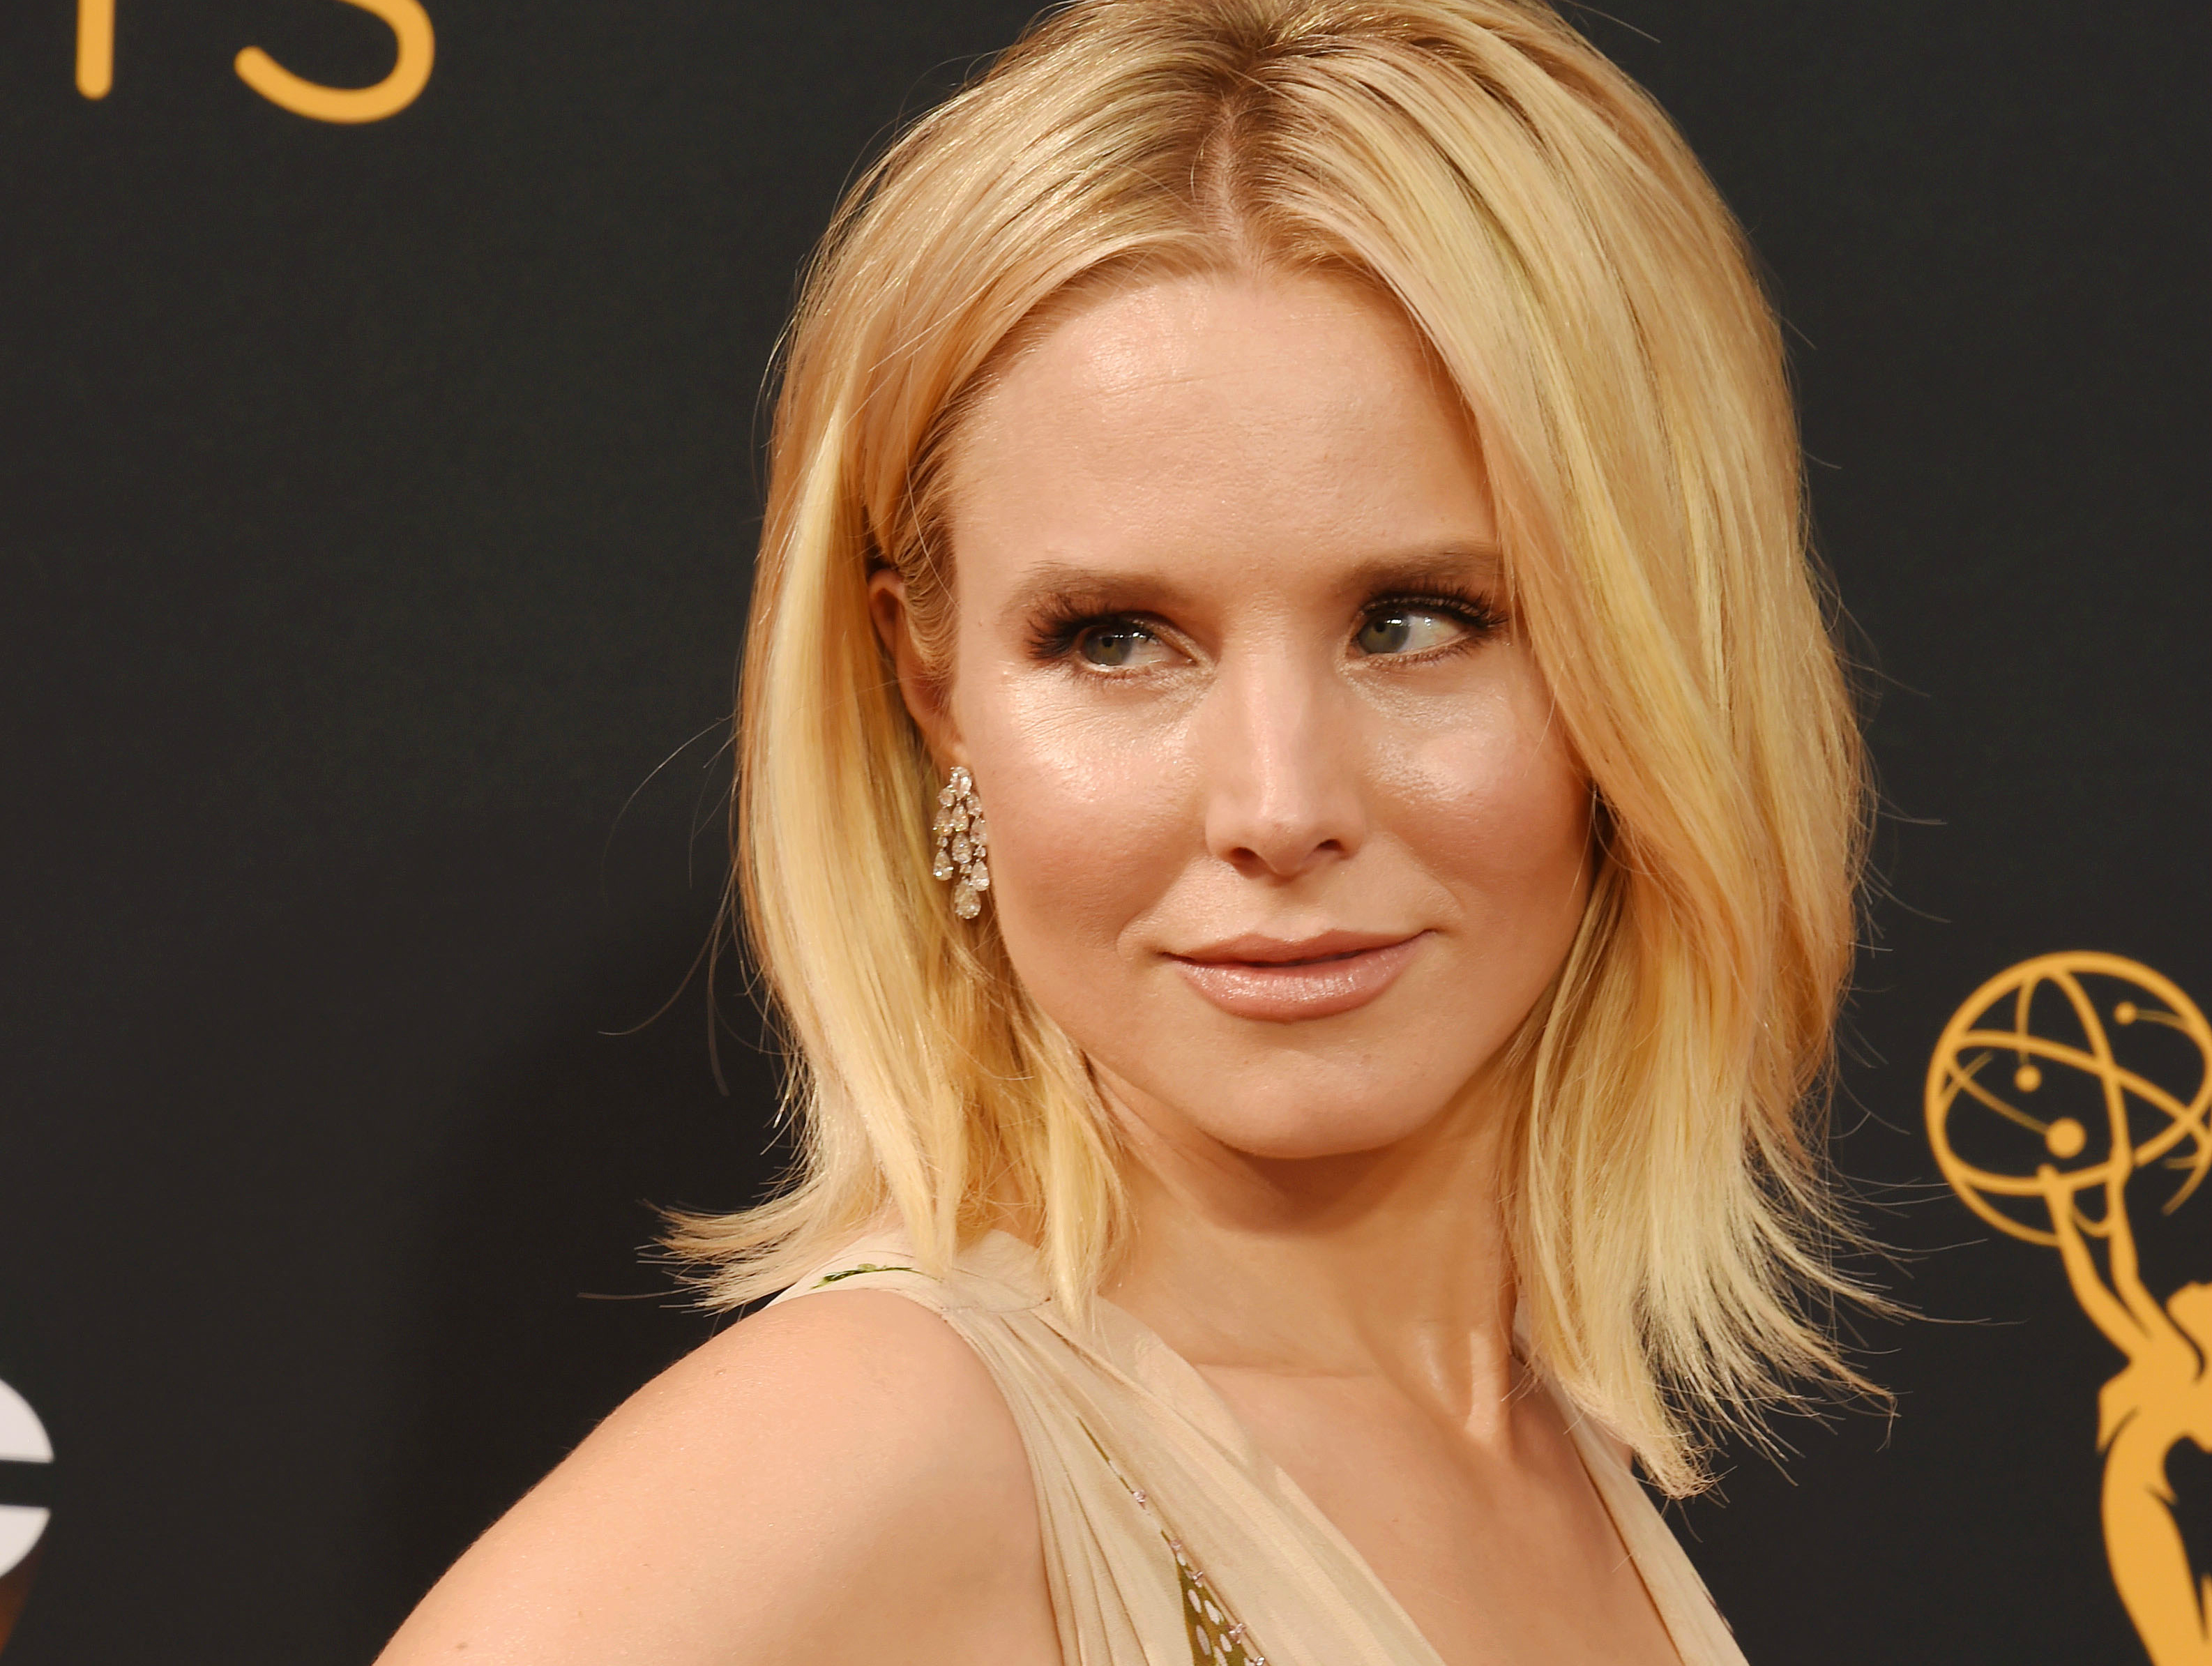 Kristen Bell's Emmys dress was almost too amazing to deal with